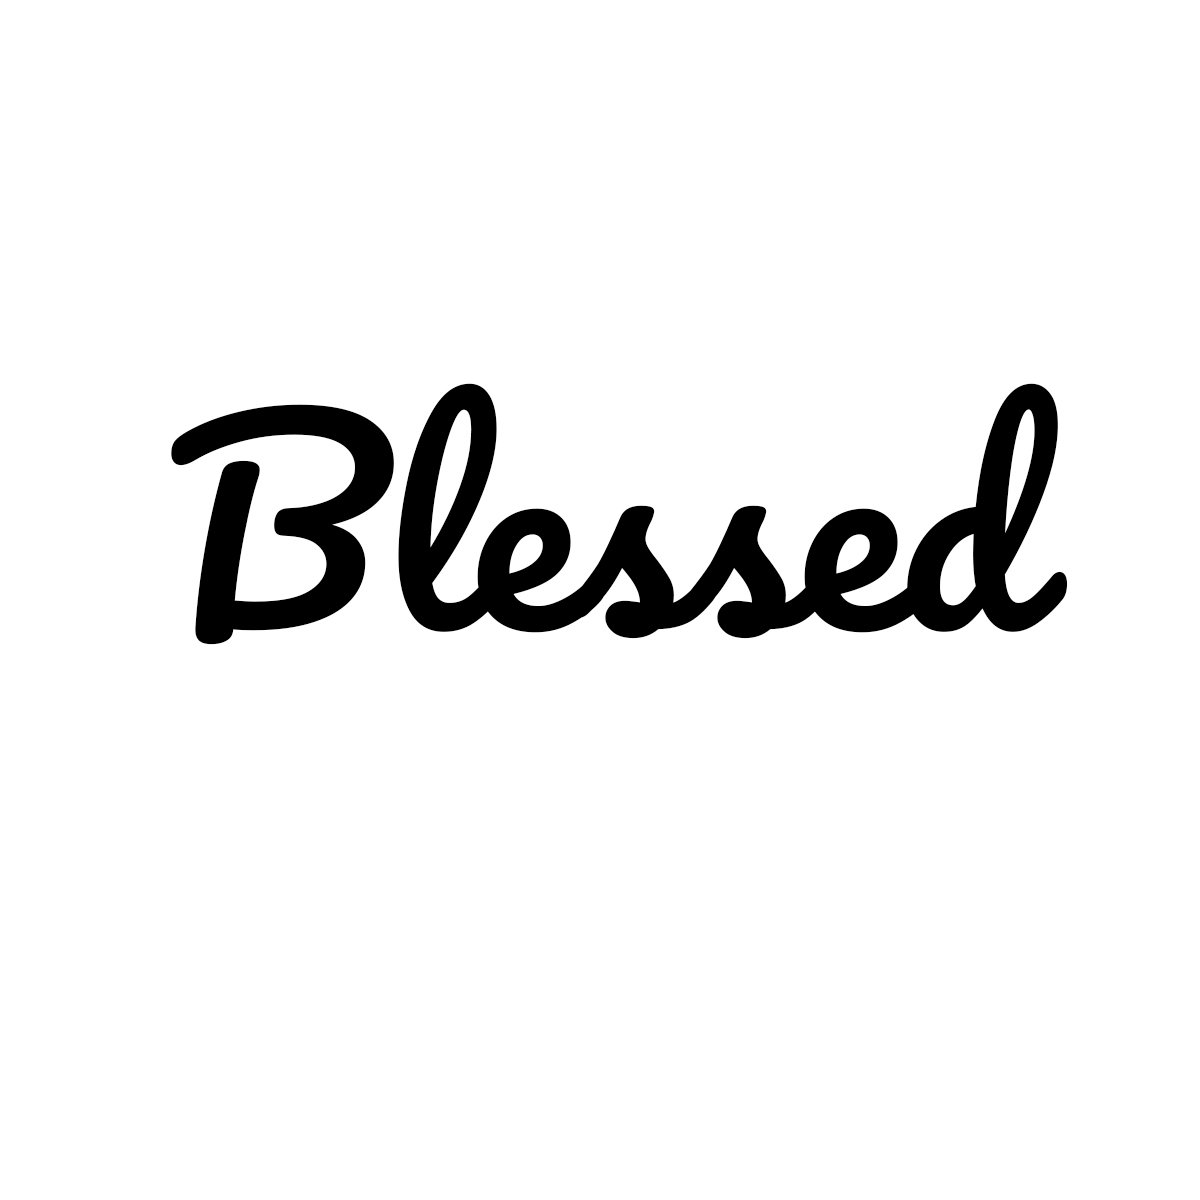 5 Blessed Auto Car Racing Motorcycle Helmet Decal White Decal Serpent